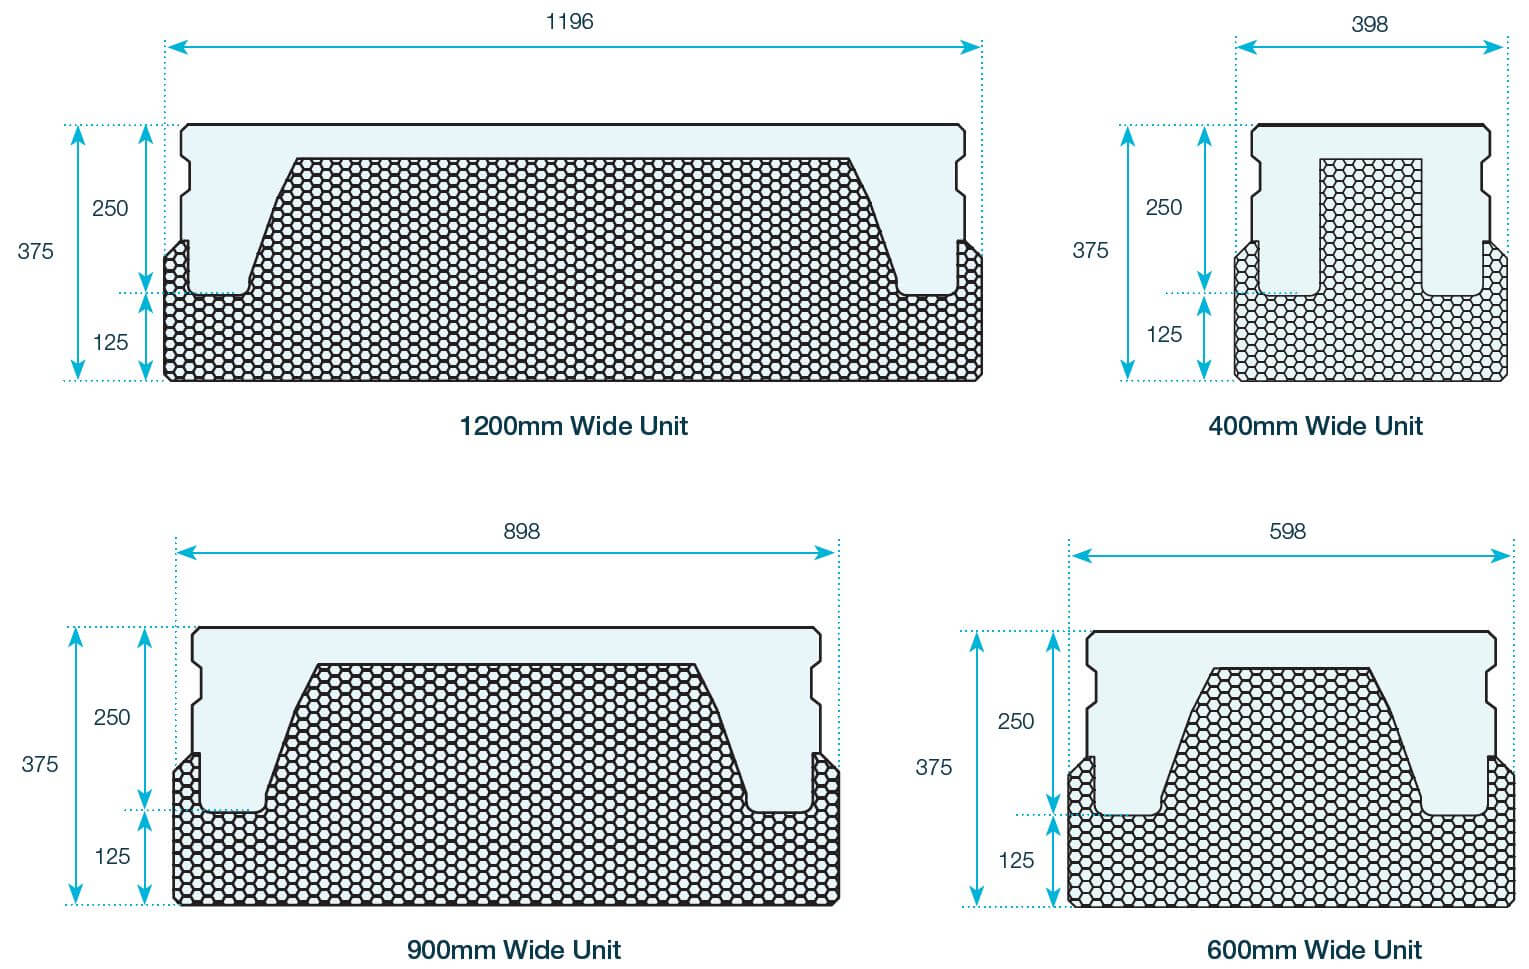 FP McCann precast concrete thermabeam 375mm thermabeam unit diagram - 300mm, 600mm, 900mm, 1200mm widths